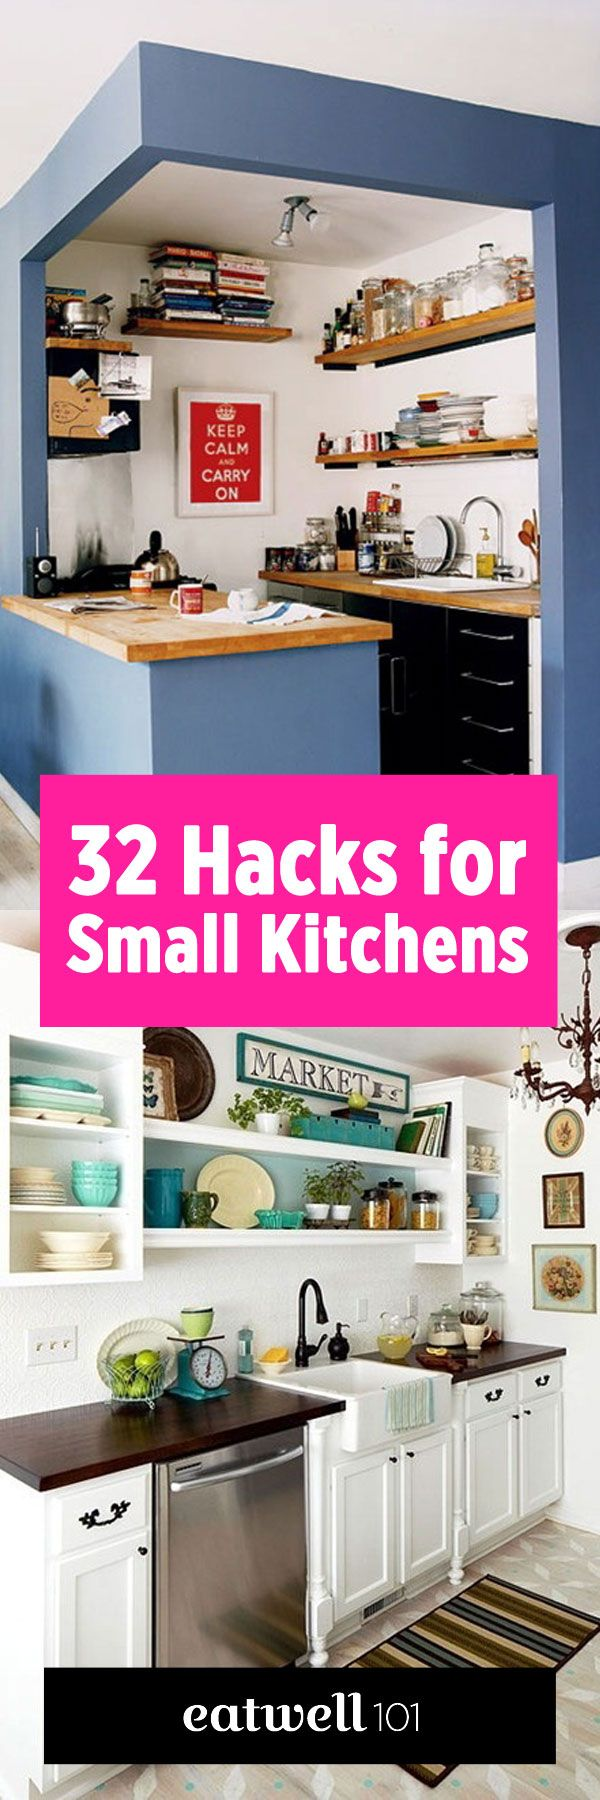 hacks to make a small kitchen look bigger small kitchen designs small